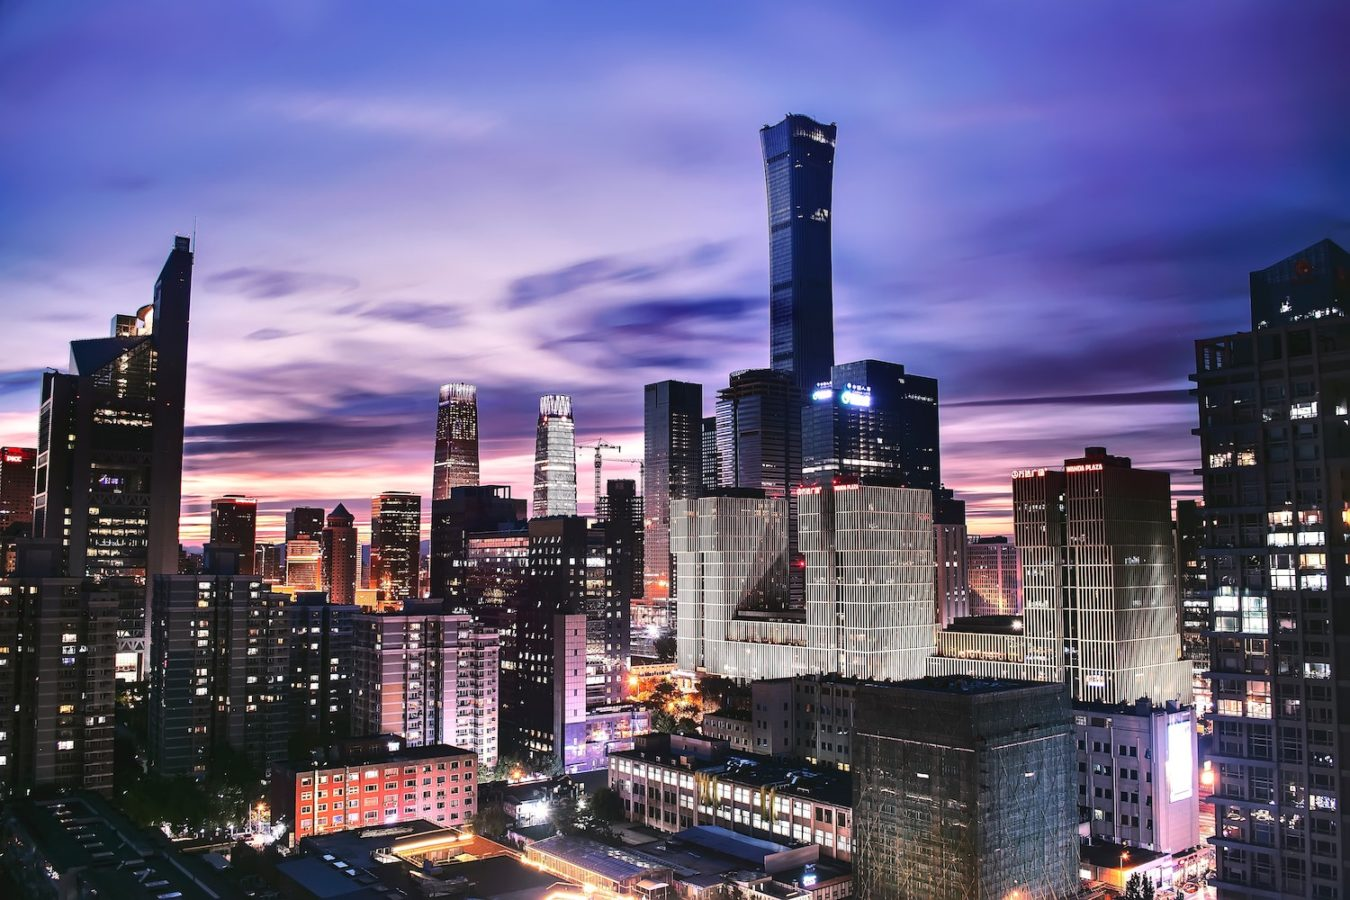 Beijing lifts most travel restrictions, says city's coronavirus outbreak contained